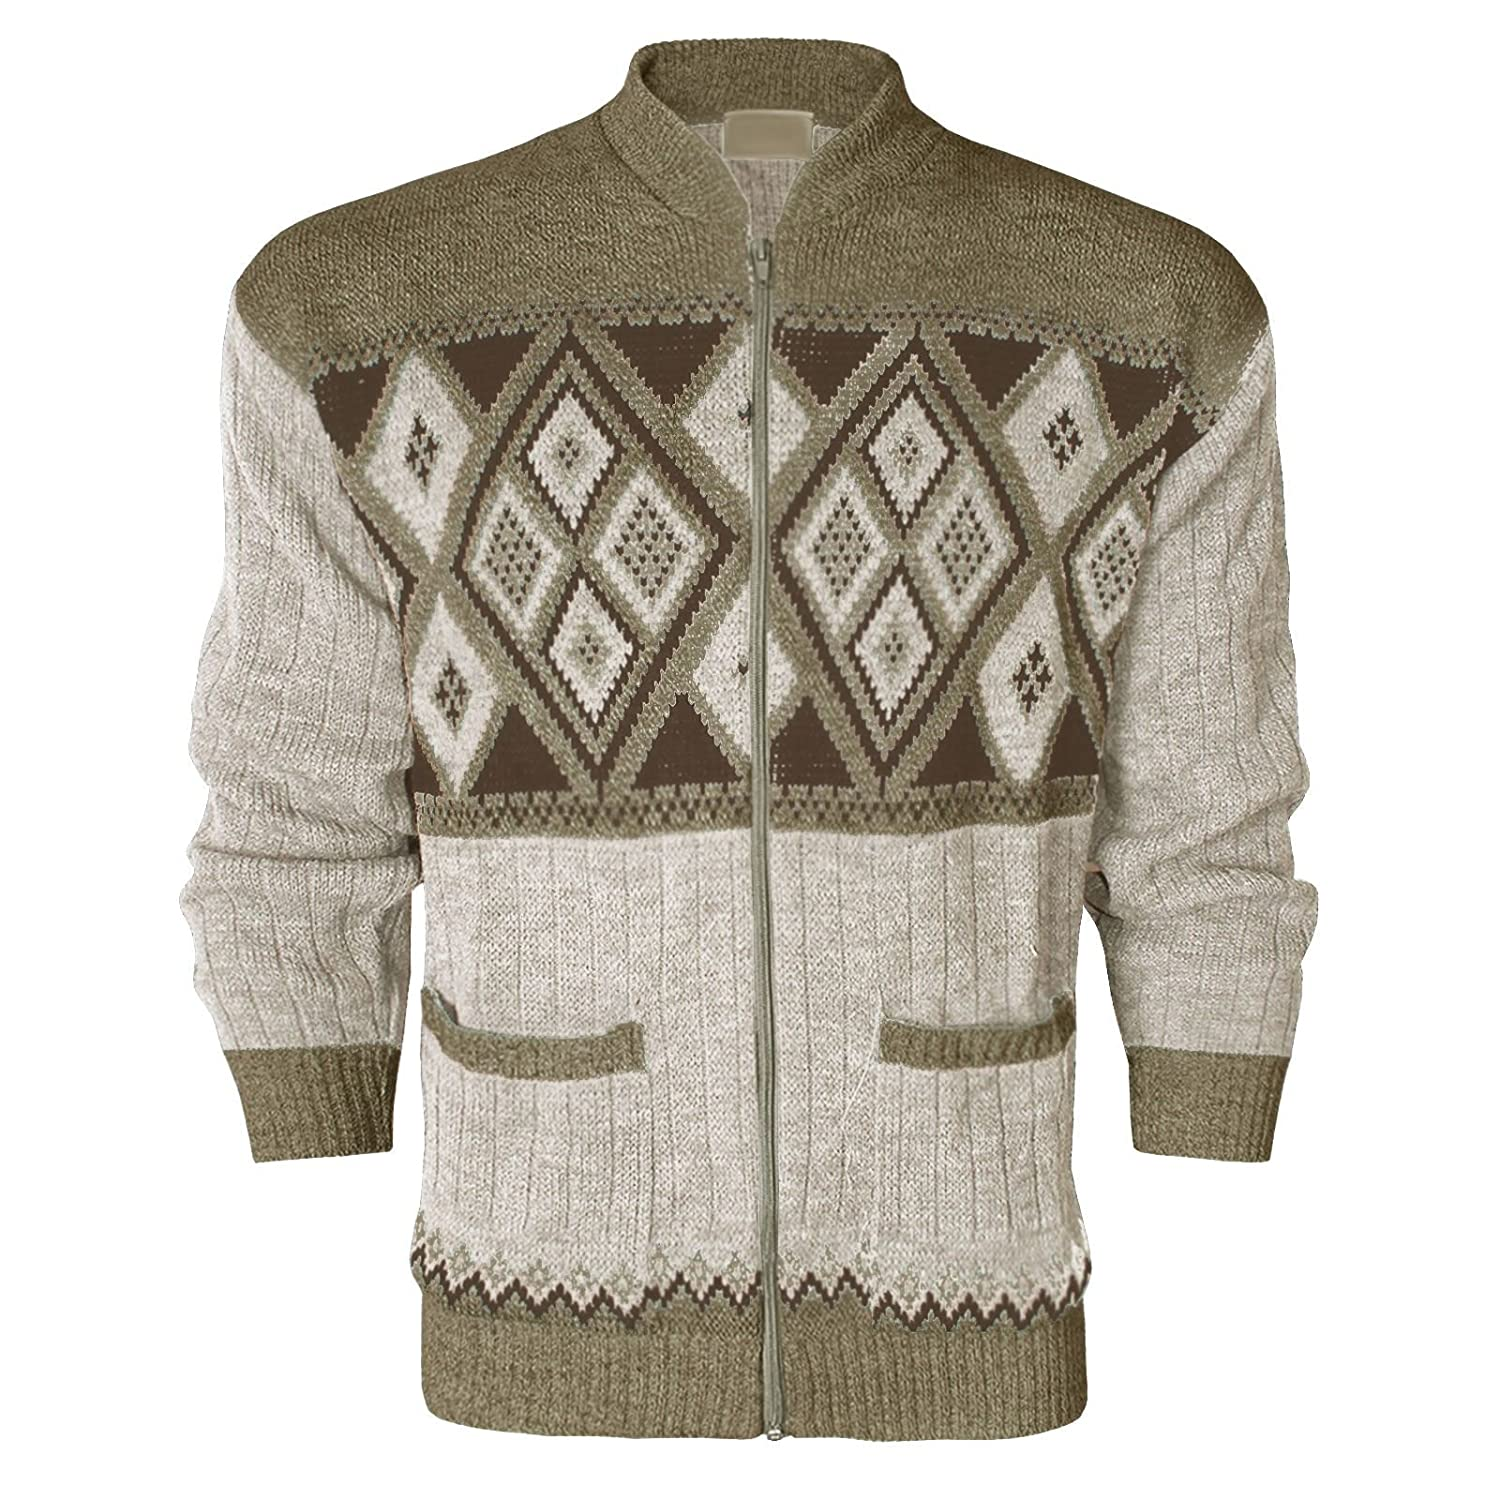 MENS GENTS ZIPPER ARGYLE DIAMOND DESIGN ZIP UP POCKET GRANDAD ...